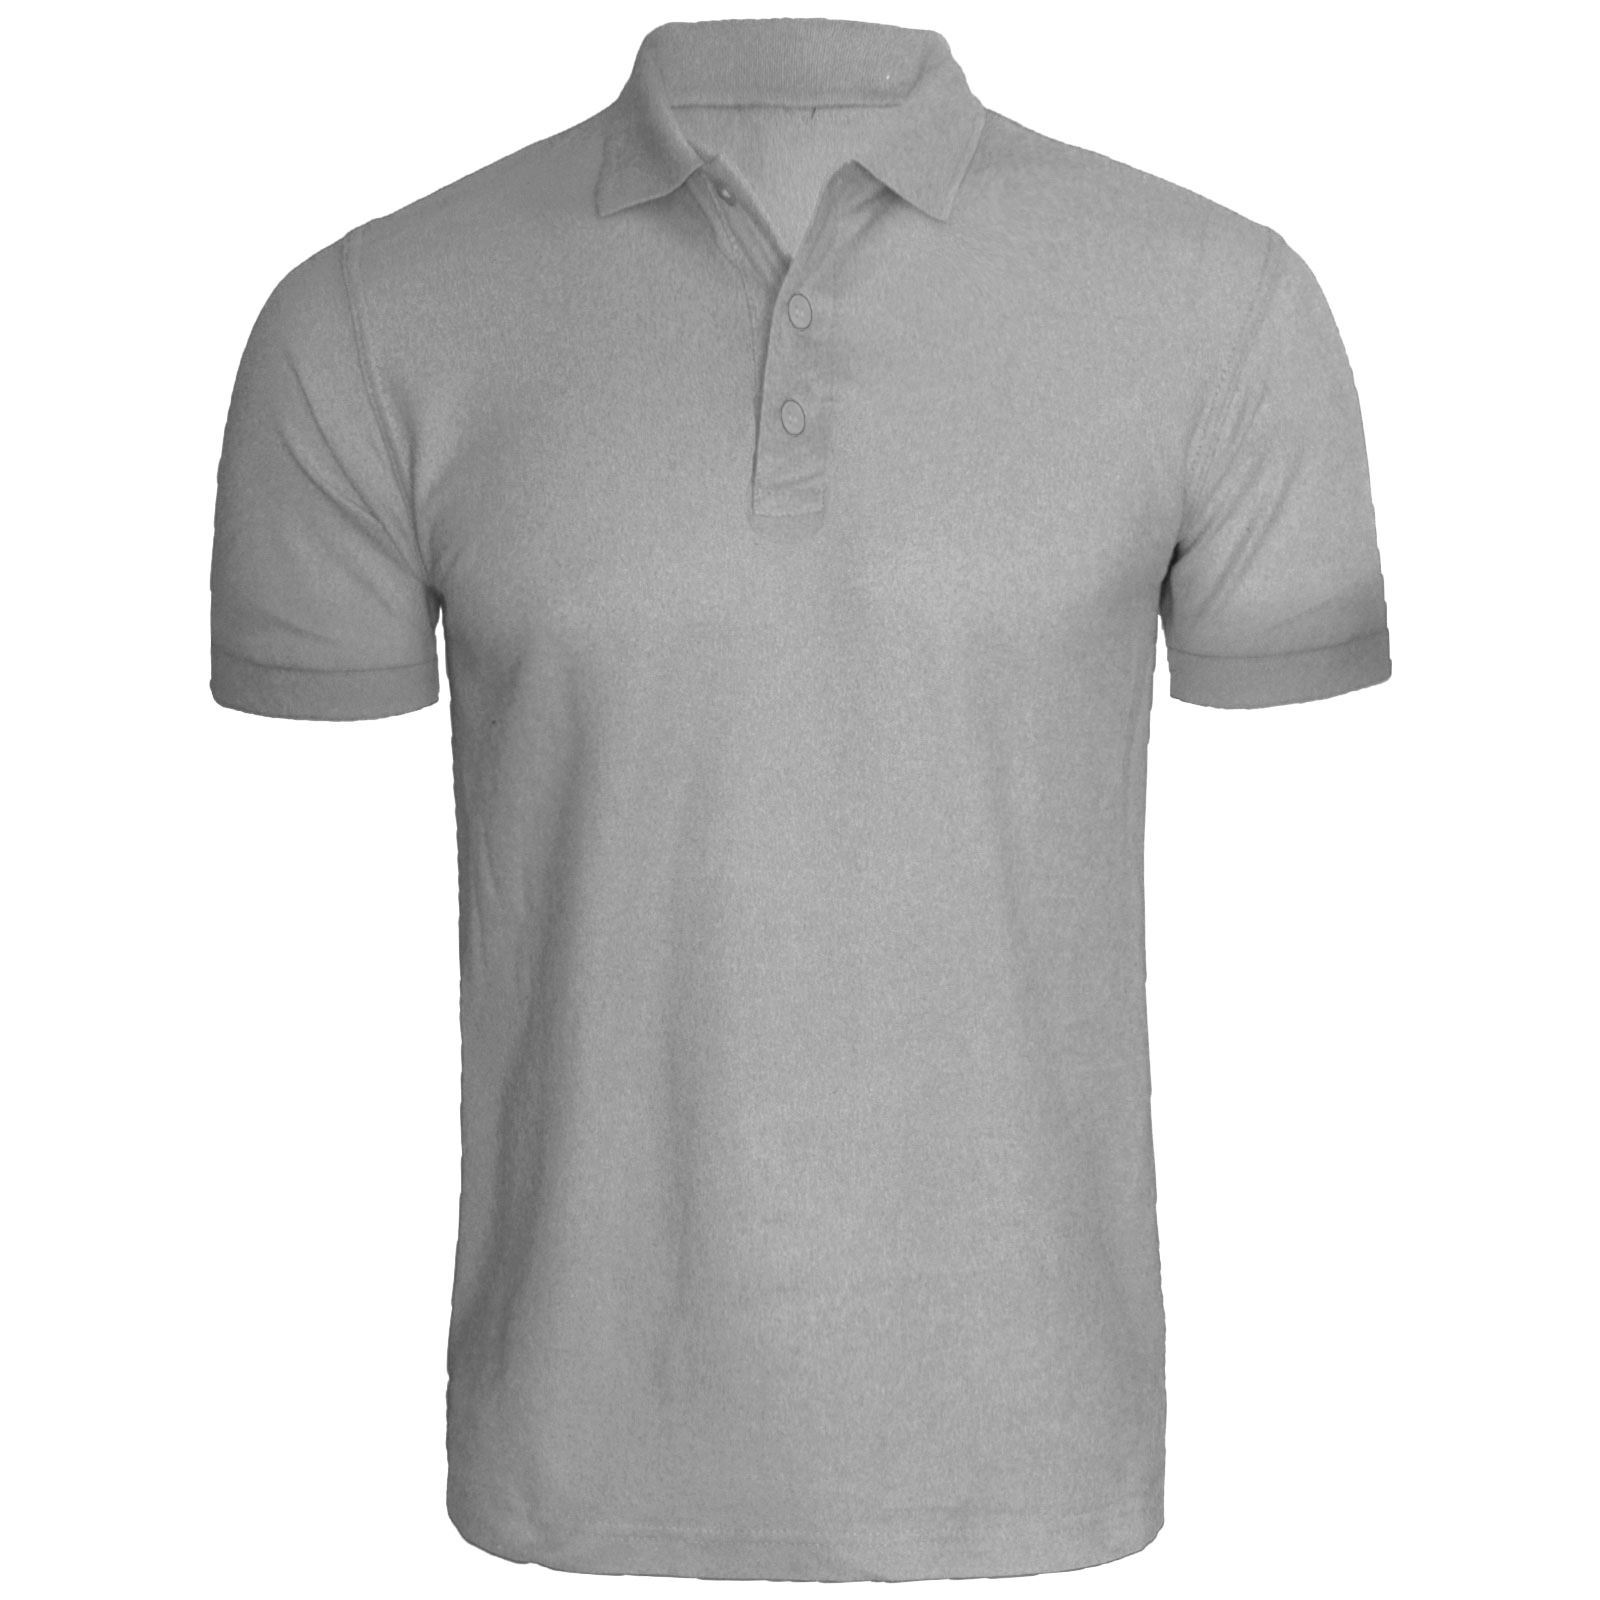 f4488c2fdb1 Mens Polo Shirt Style - BCD Tofu House